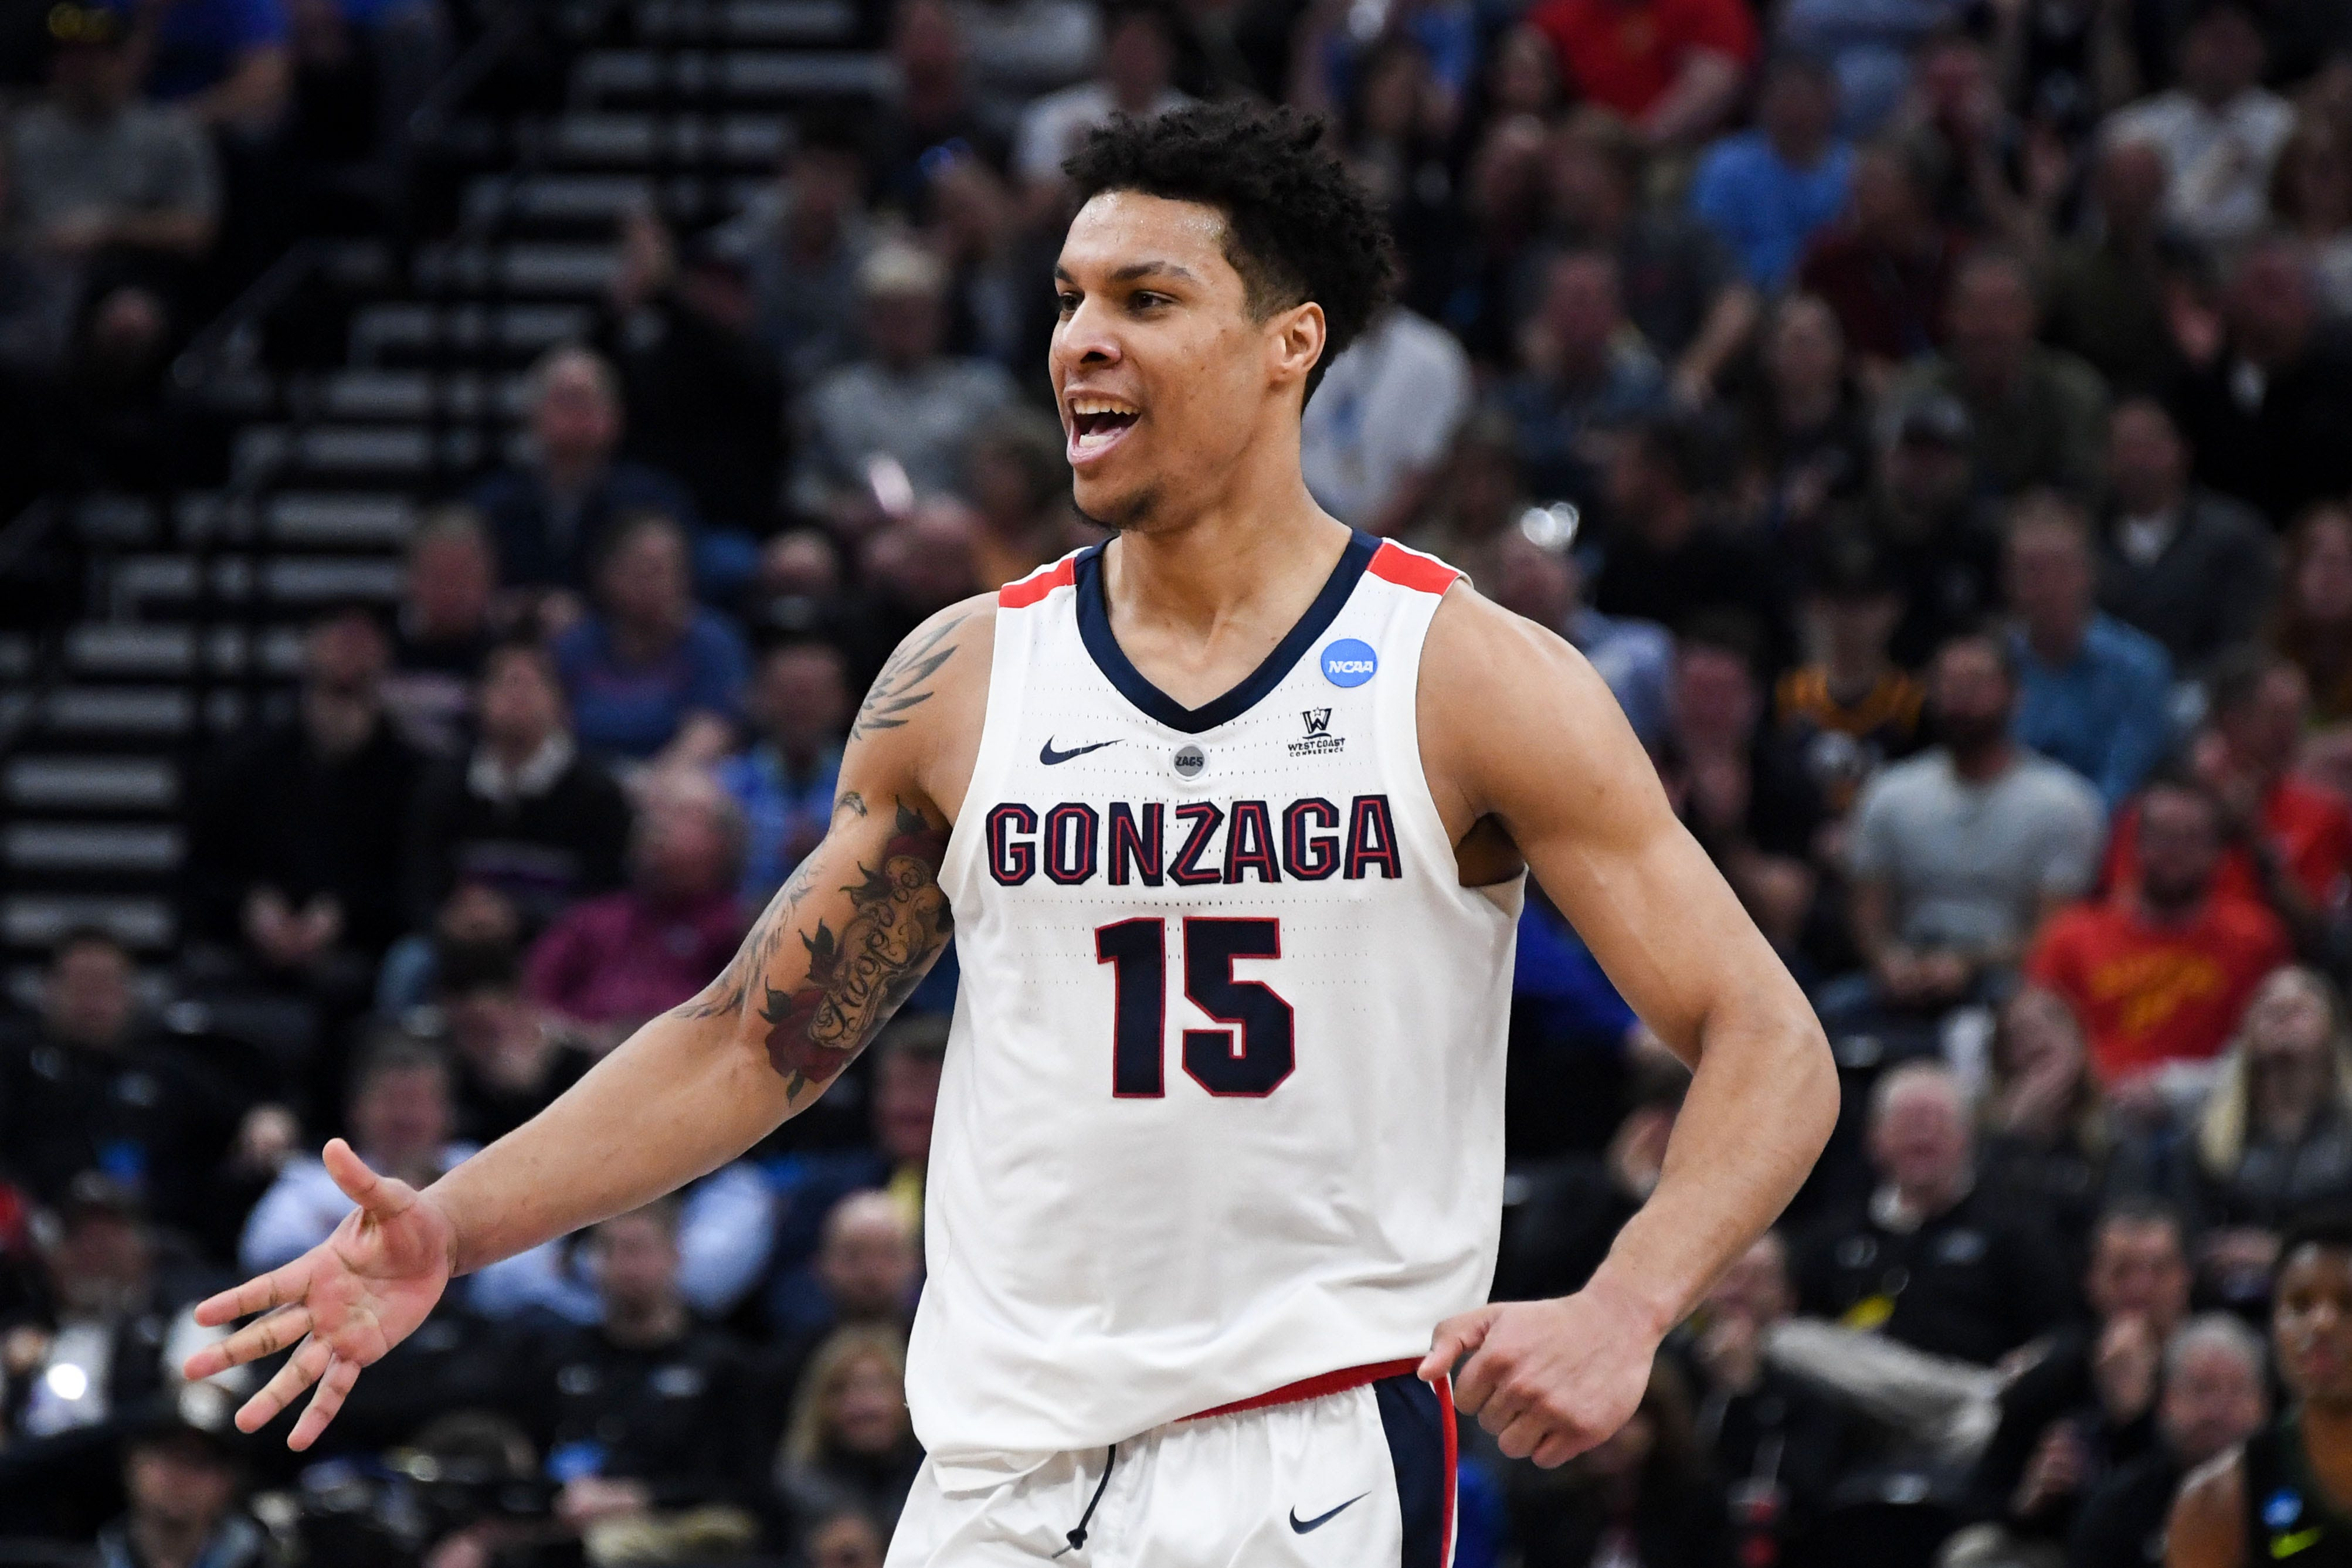 Brandon Clarke sets scoring record as No. 1 Gonzaga reaches Sweet 16 with win over Baylor